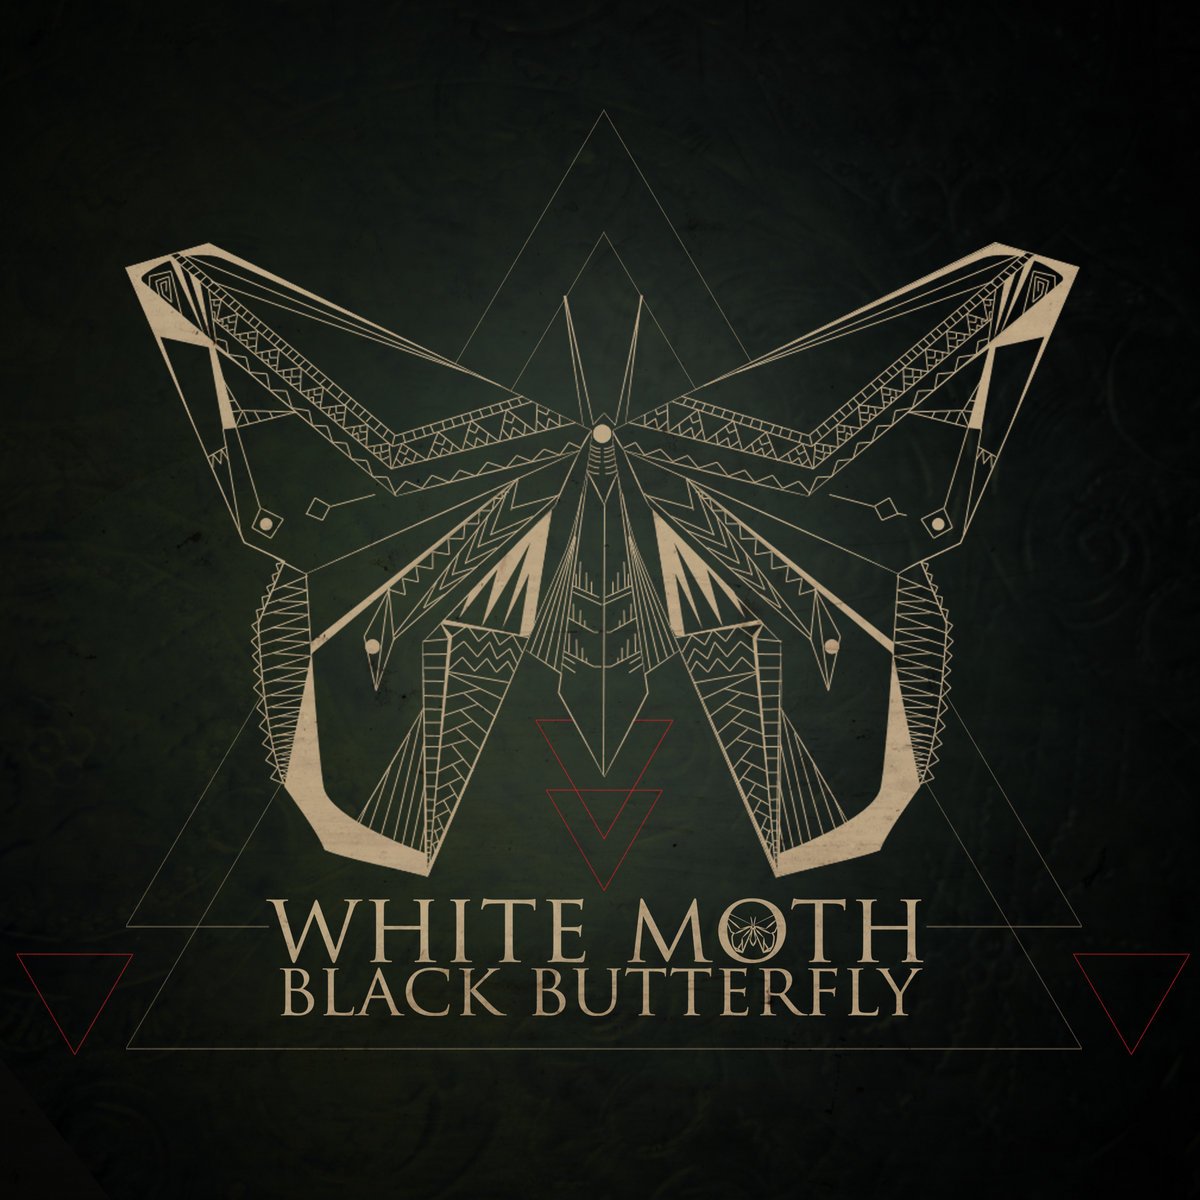 White Moth Black Butterfly